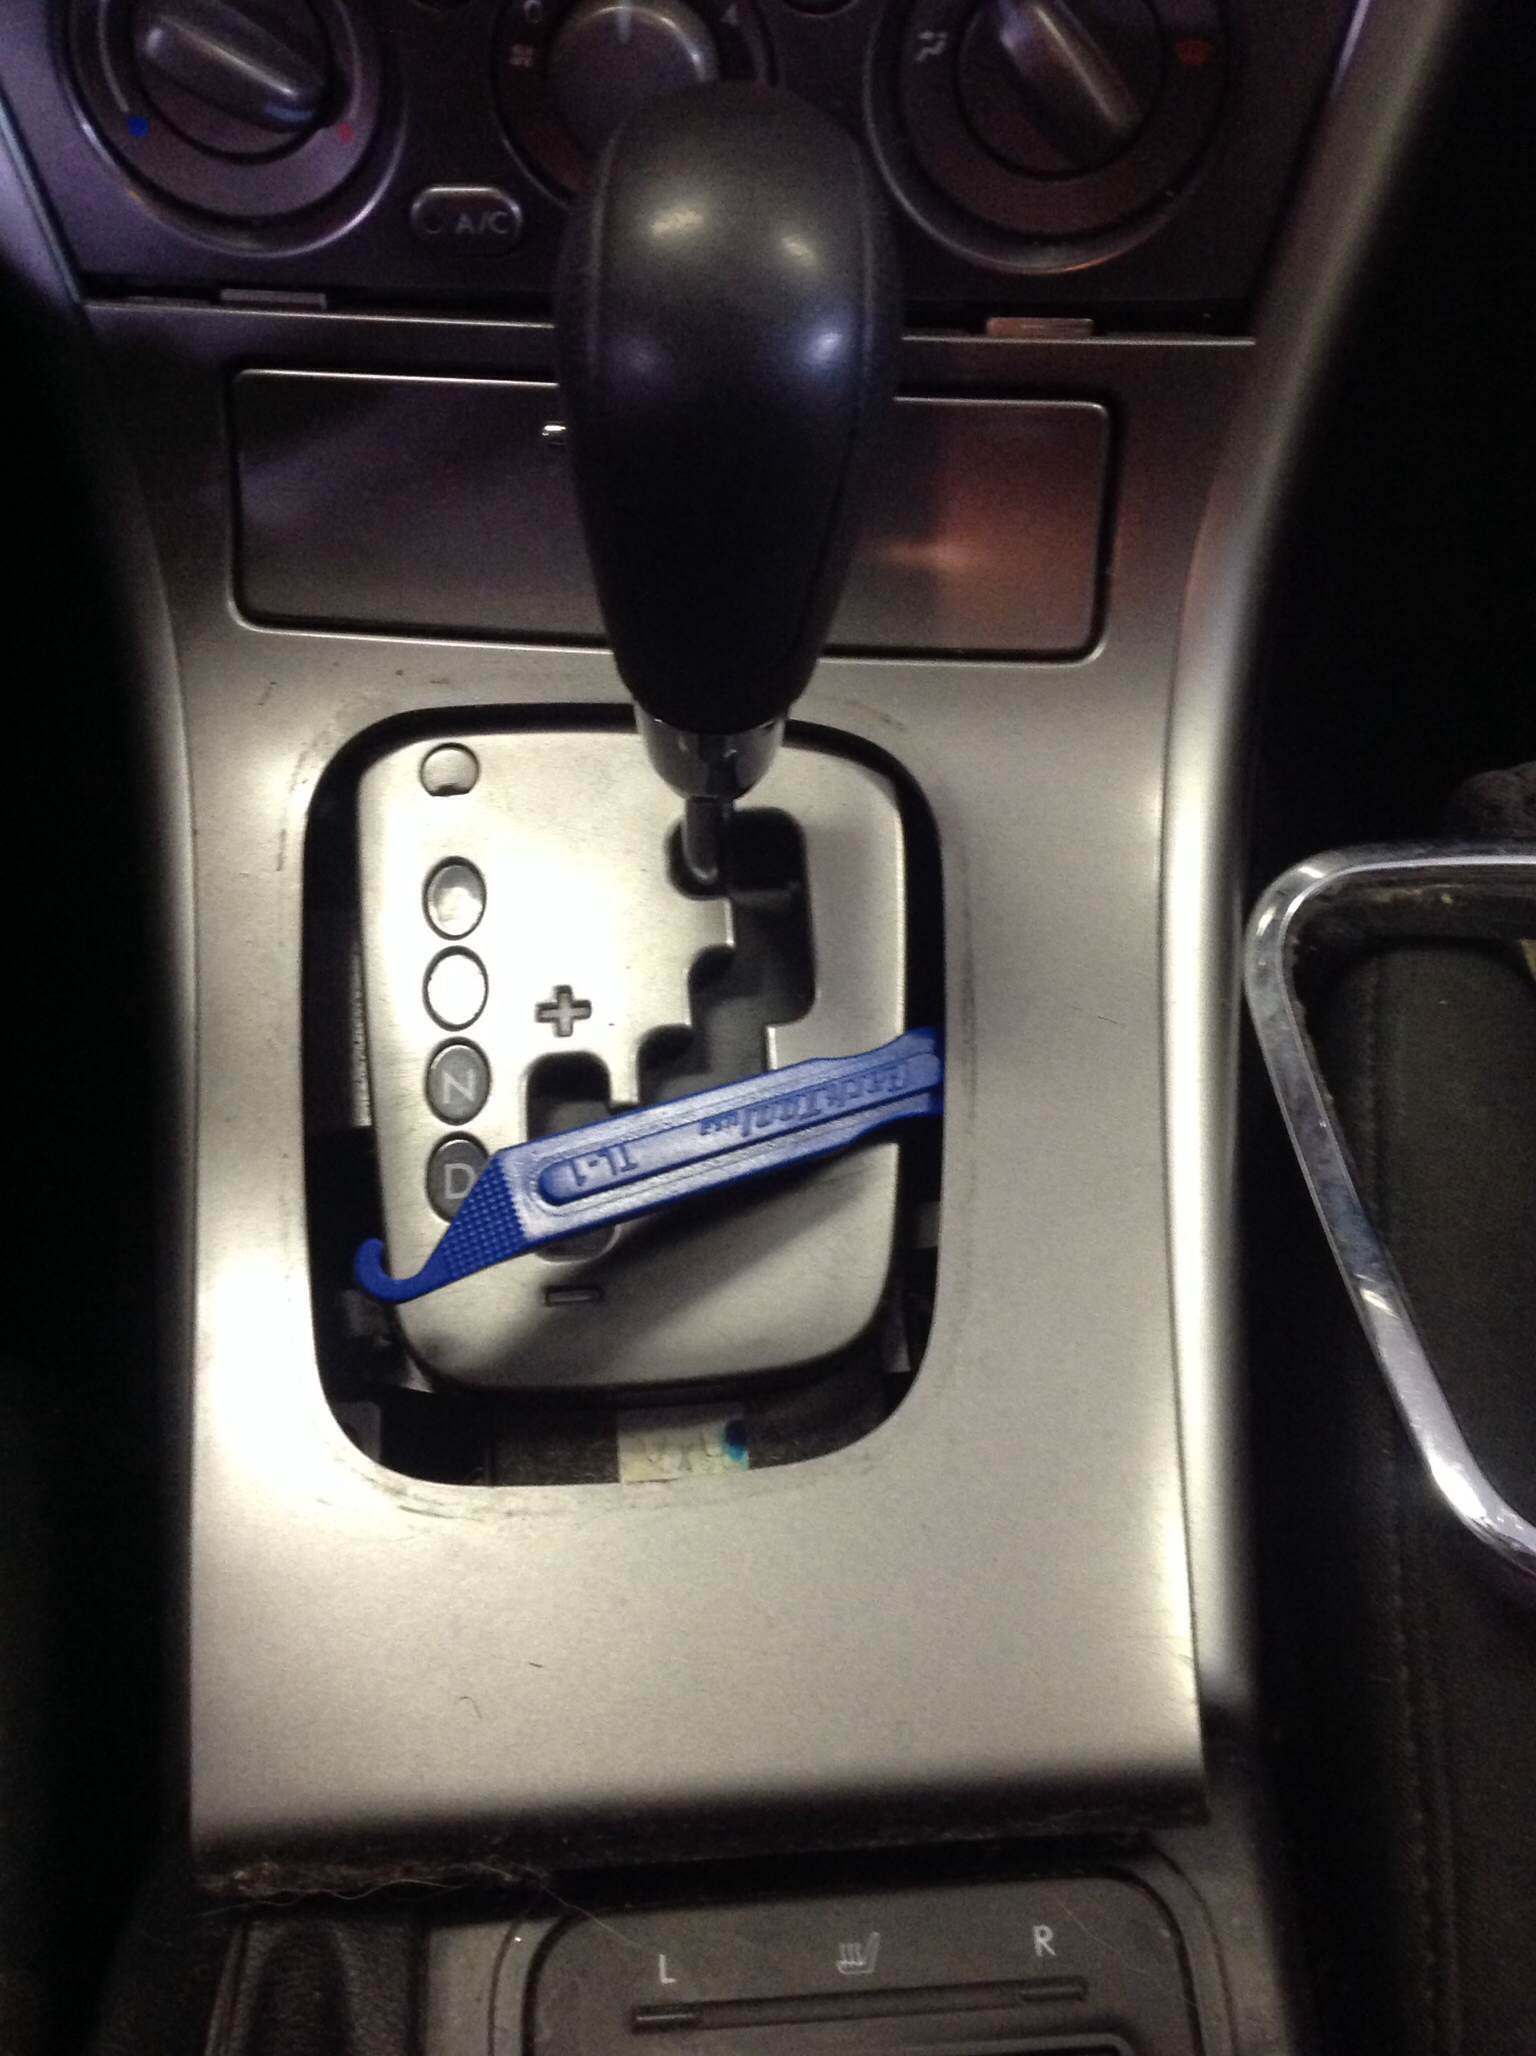 3 way outlet 2009 jetta wiring diagram need to replace gear shifter light on 2005 outback - subaru forums